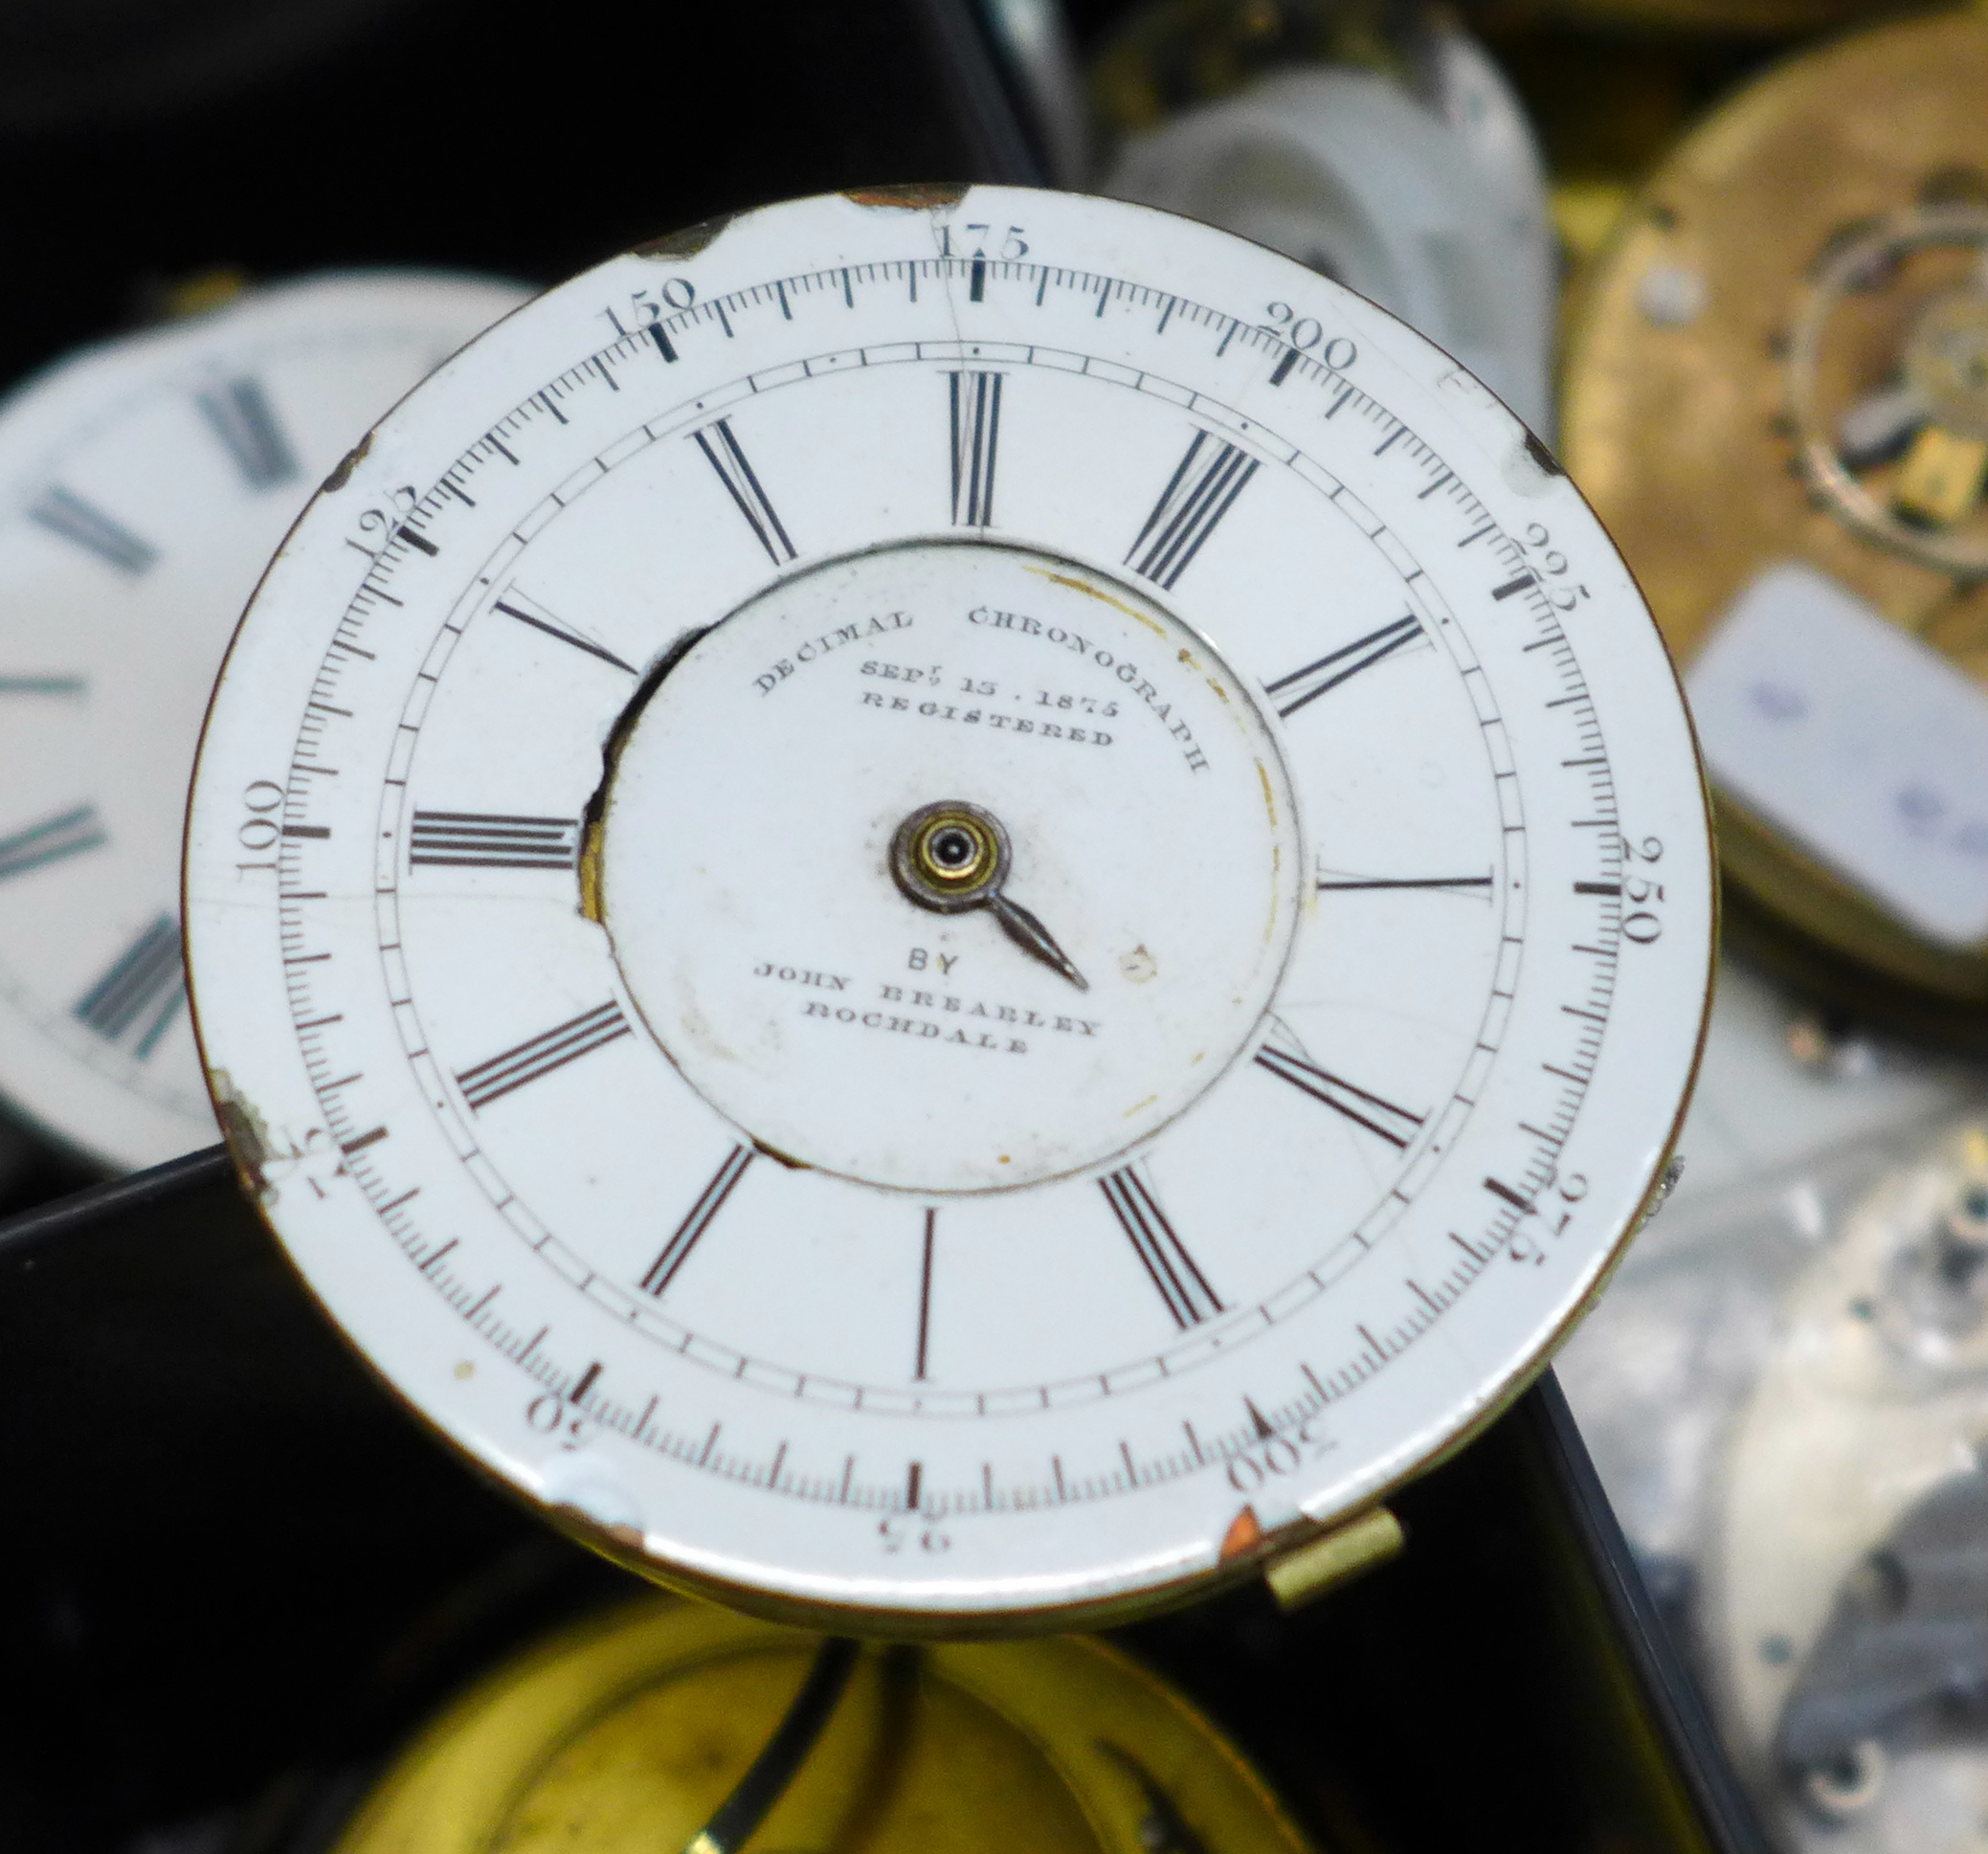 A large collection of pocket watch movements and dials plus an Action Timer stopwatch - Image 5 of 6